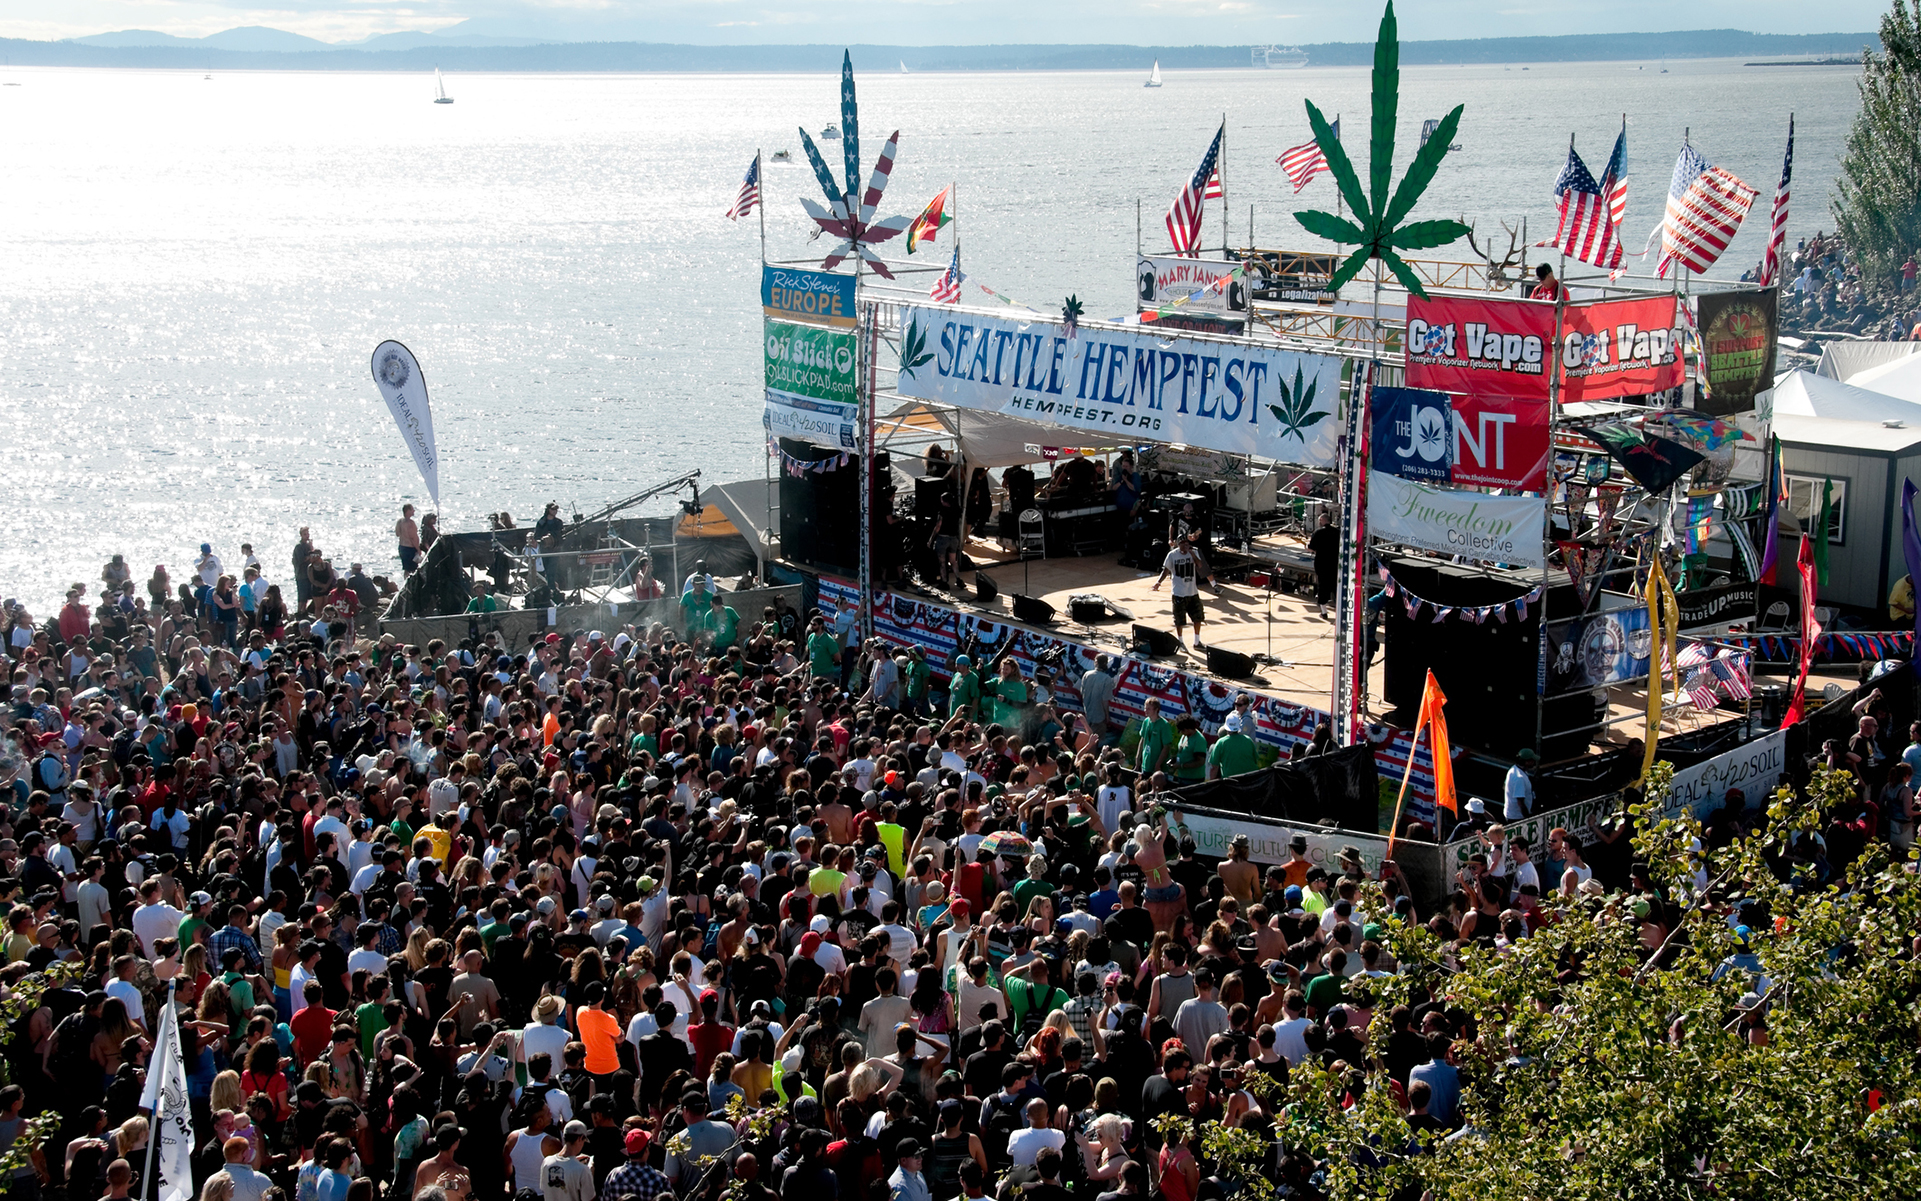 Seattle Hempfest 2019: Leafly's Guide to the Original